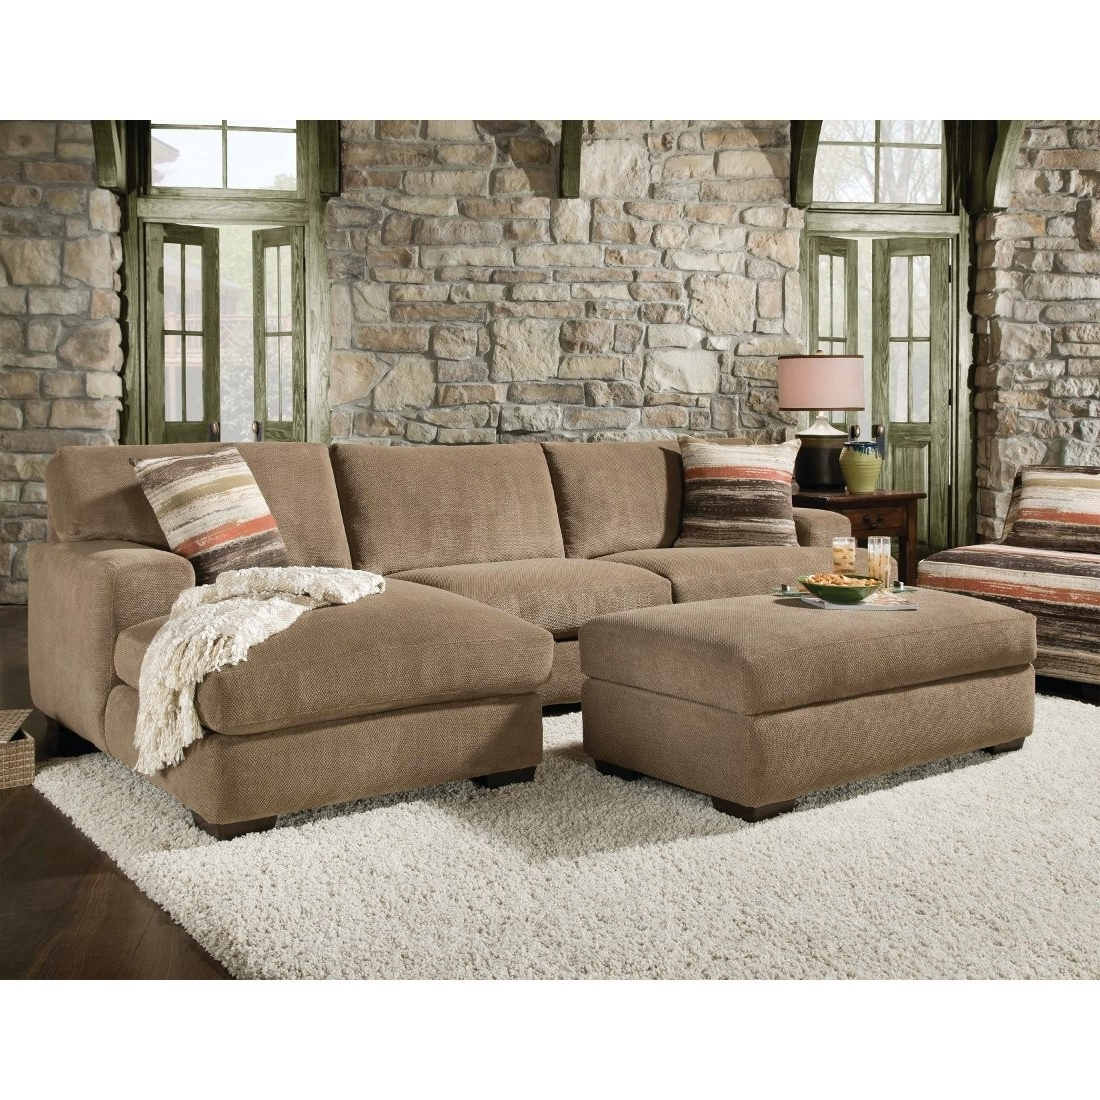 Small Sectional Sofas With Chaise With Most Recently Released Sofa ~ Awesome Small Sectional Sofa With Chaise 71Lhwxg9Fml (View 10 of 15)